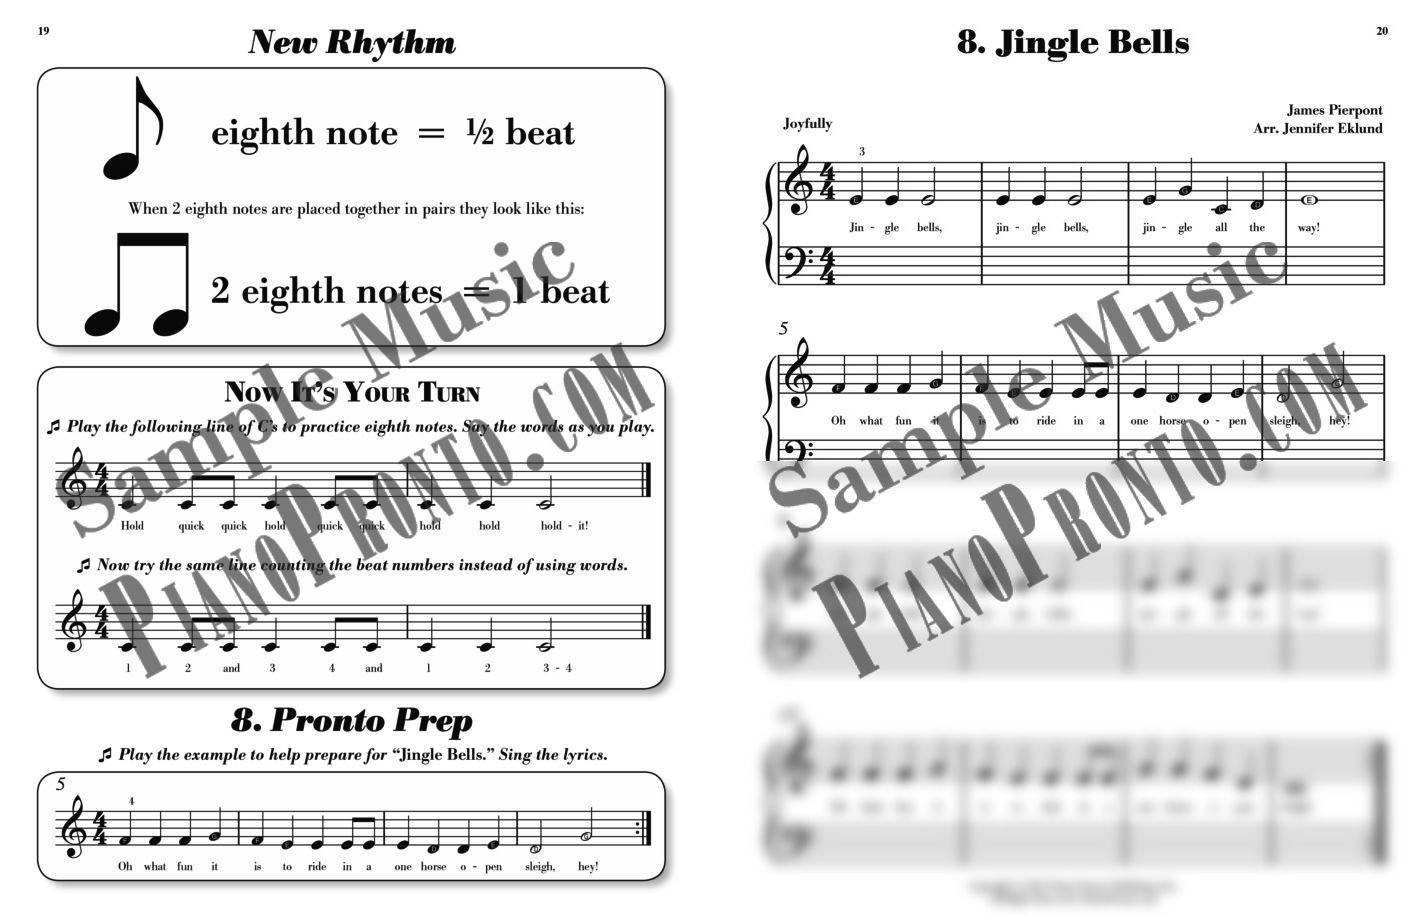 Piano Pronto®: Prelude | Hardcopy, Method Book | Piano Pronto Publishing